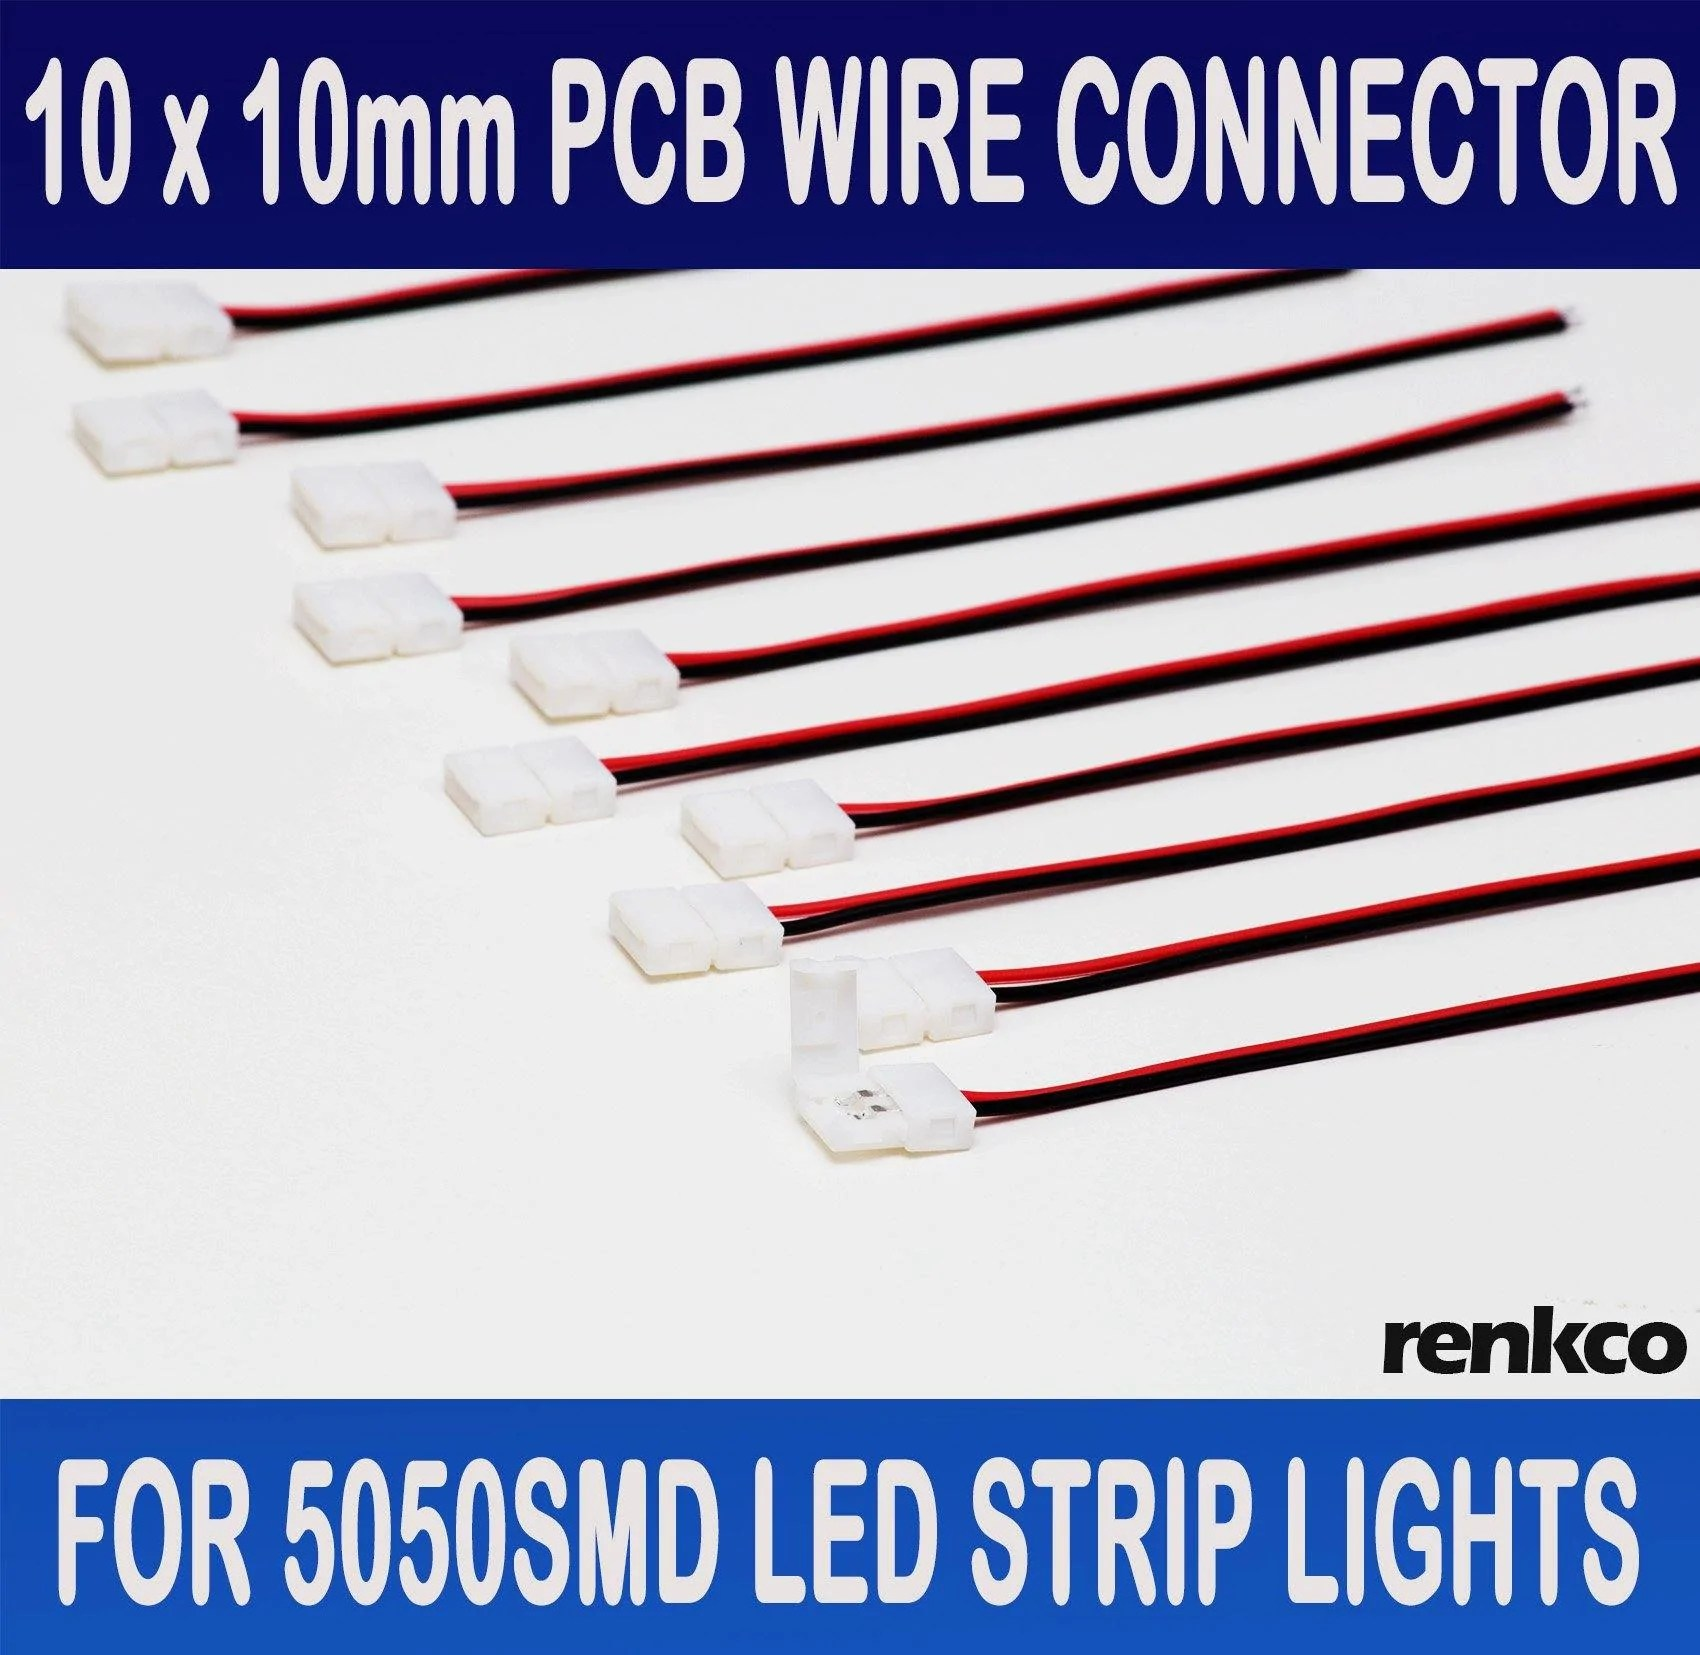 medium resolution of renkco renkco 10pcs 10mm pcb board with wire connector for 5050 led strip lights oz